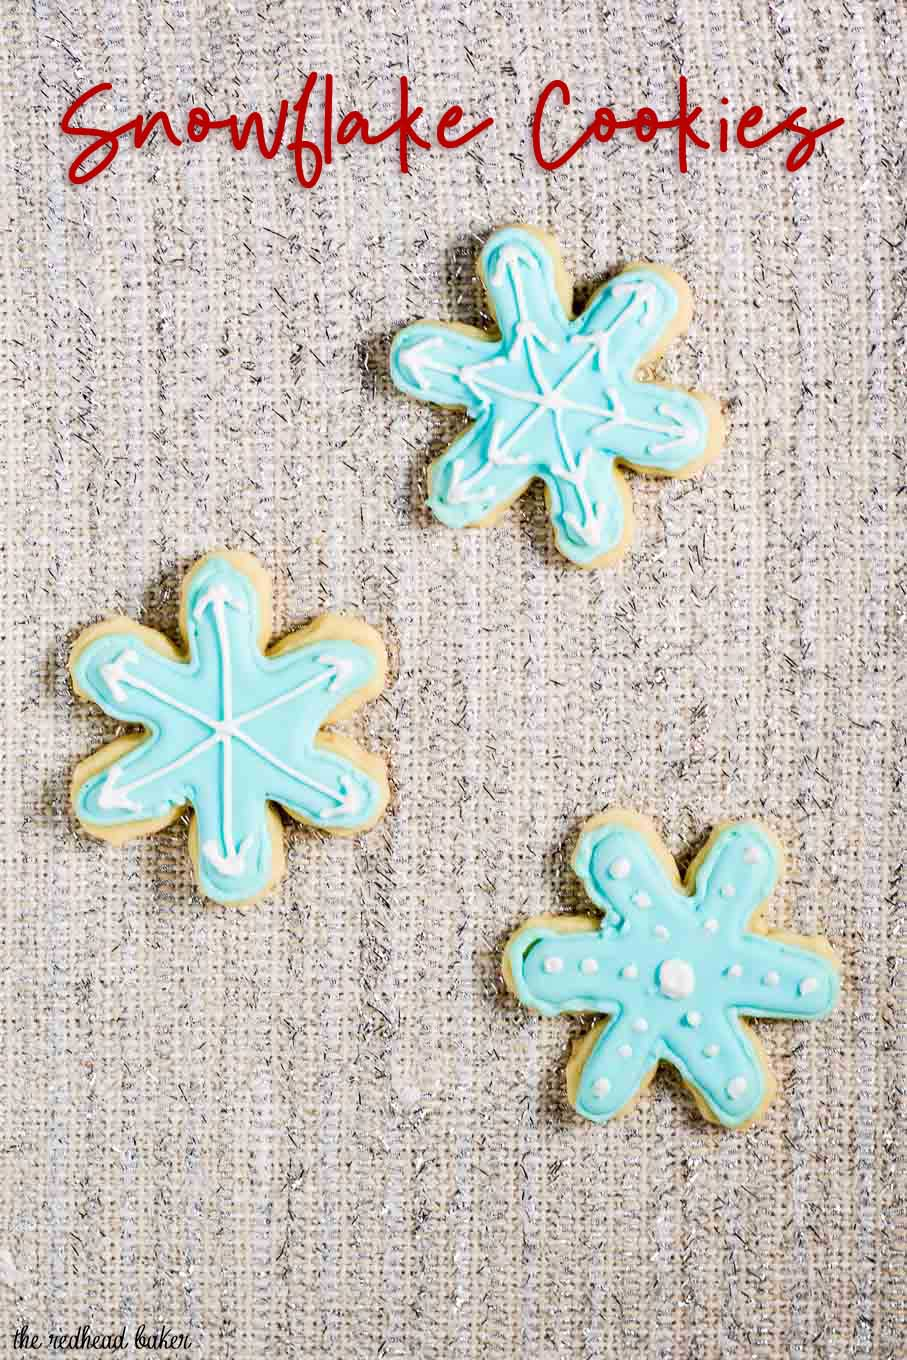 Let it snow with these adorable snowflake cookies! Perfect for any winter party, decorate each in a unique pattern, just like real snowflakes!  #ChristmasCookies